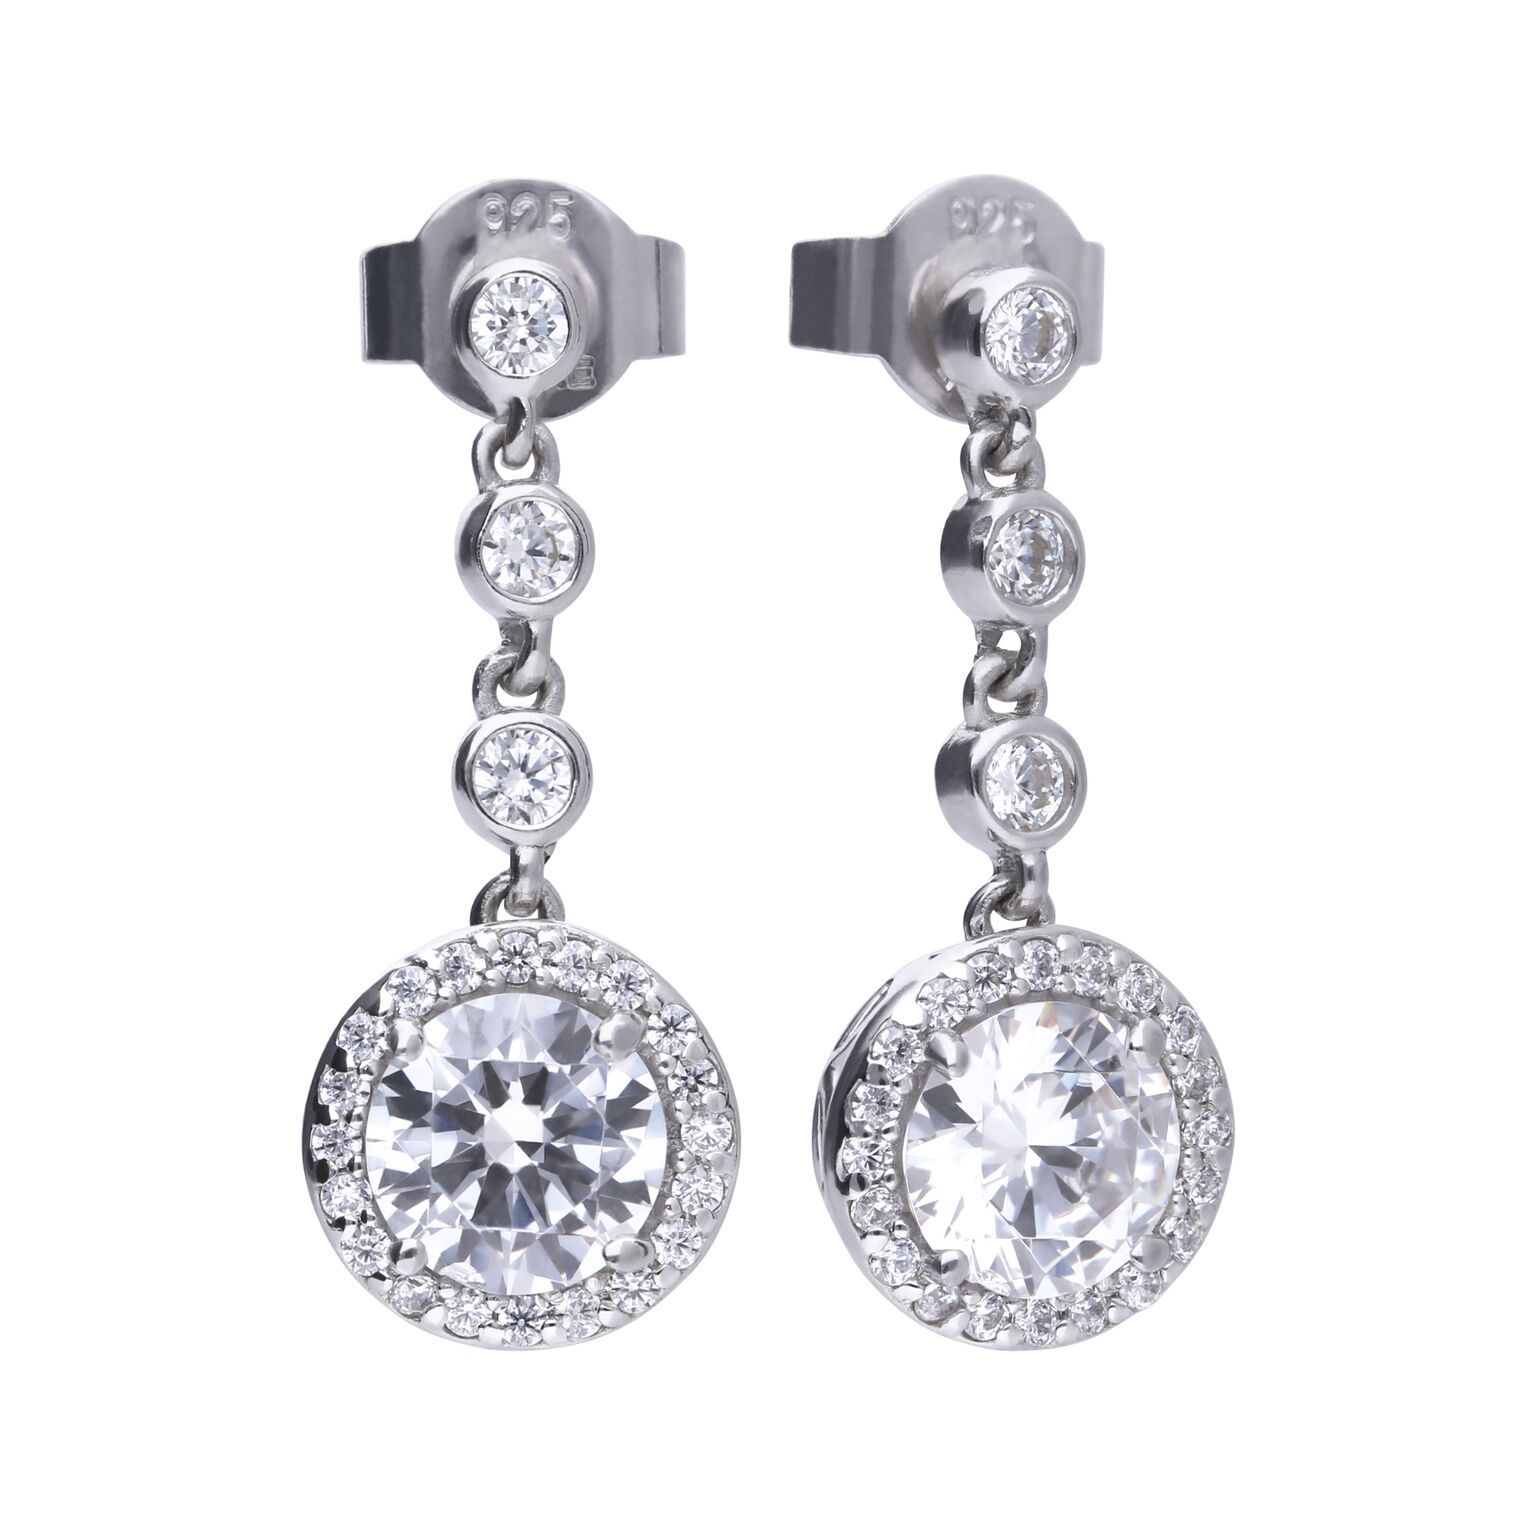 69480 - diamonfire Cubic Zirconia set silver drop earrings